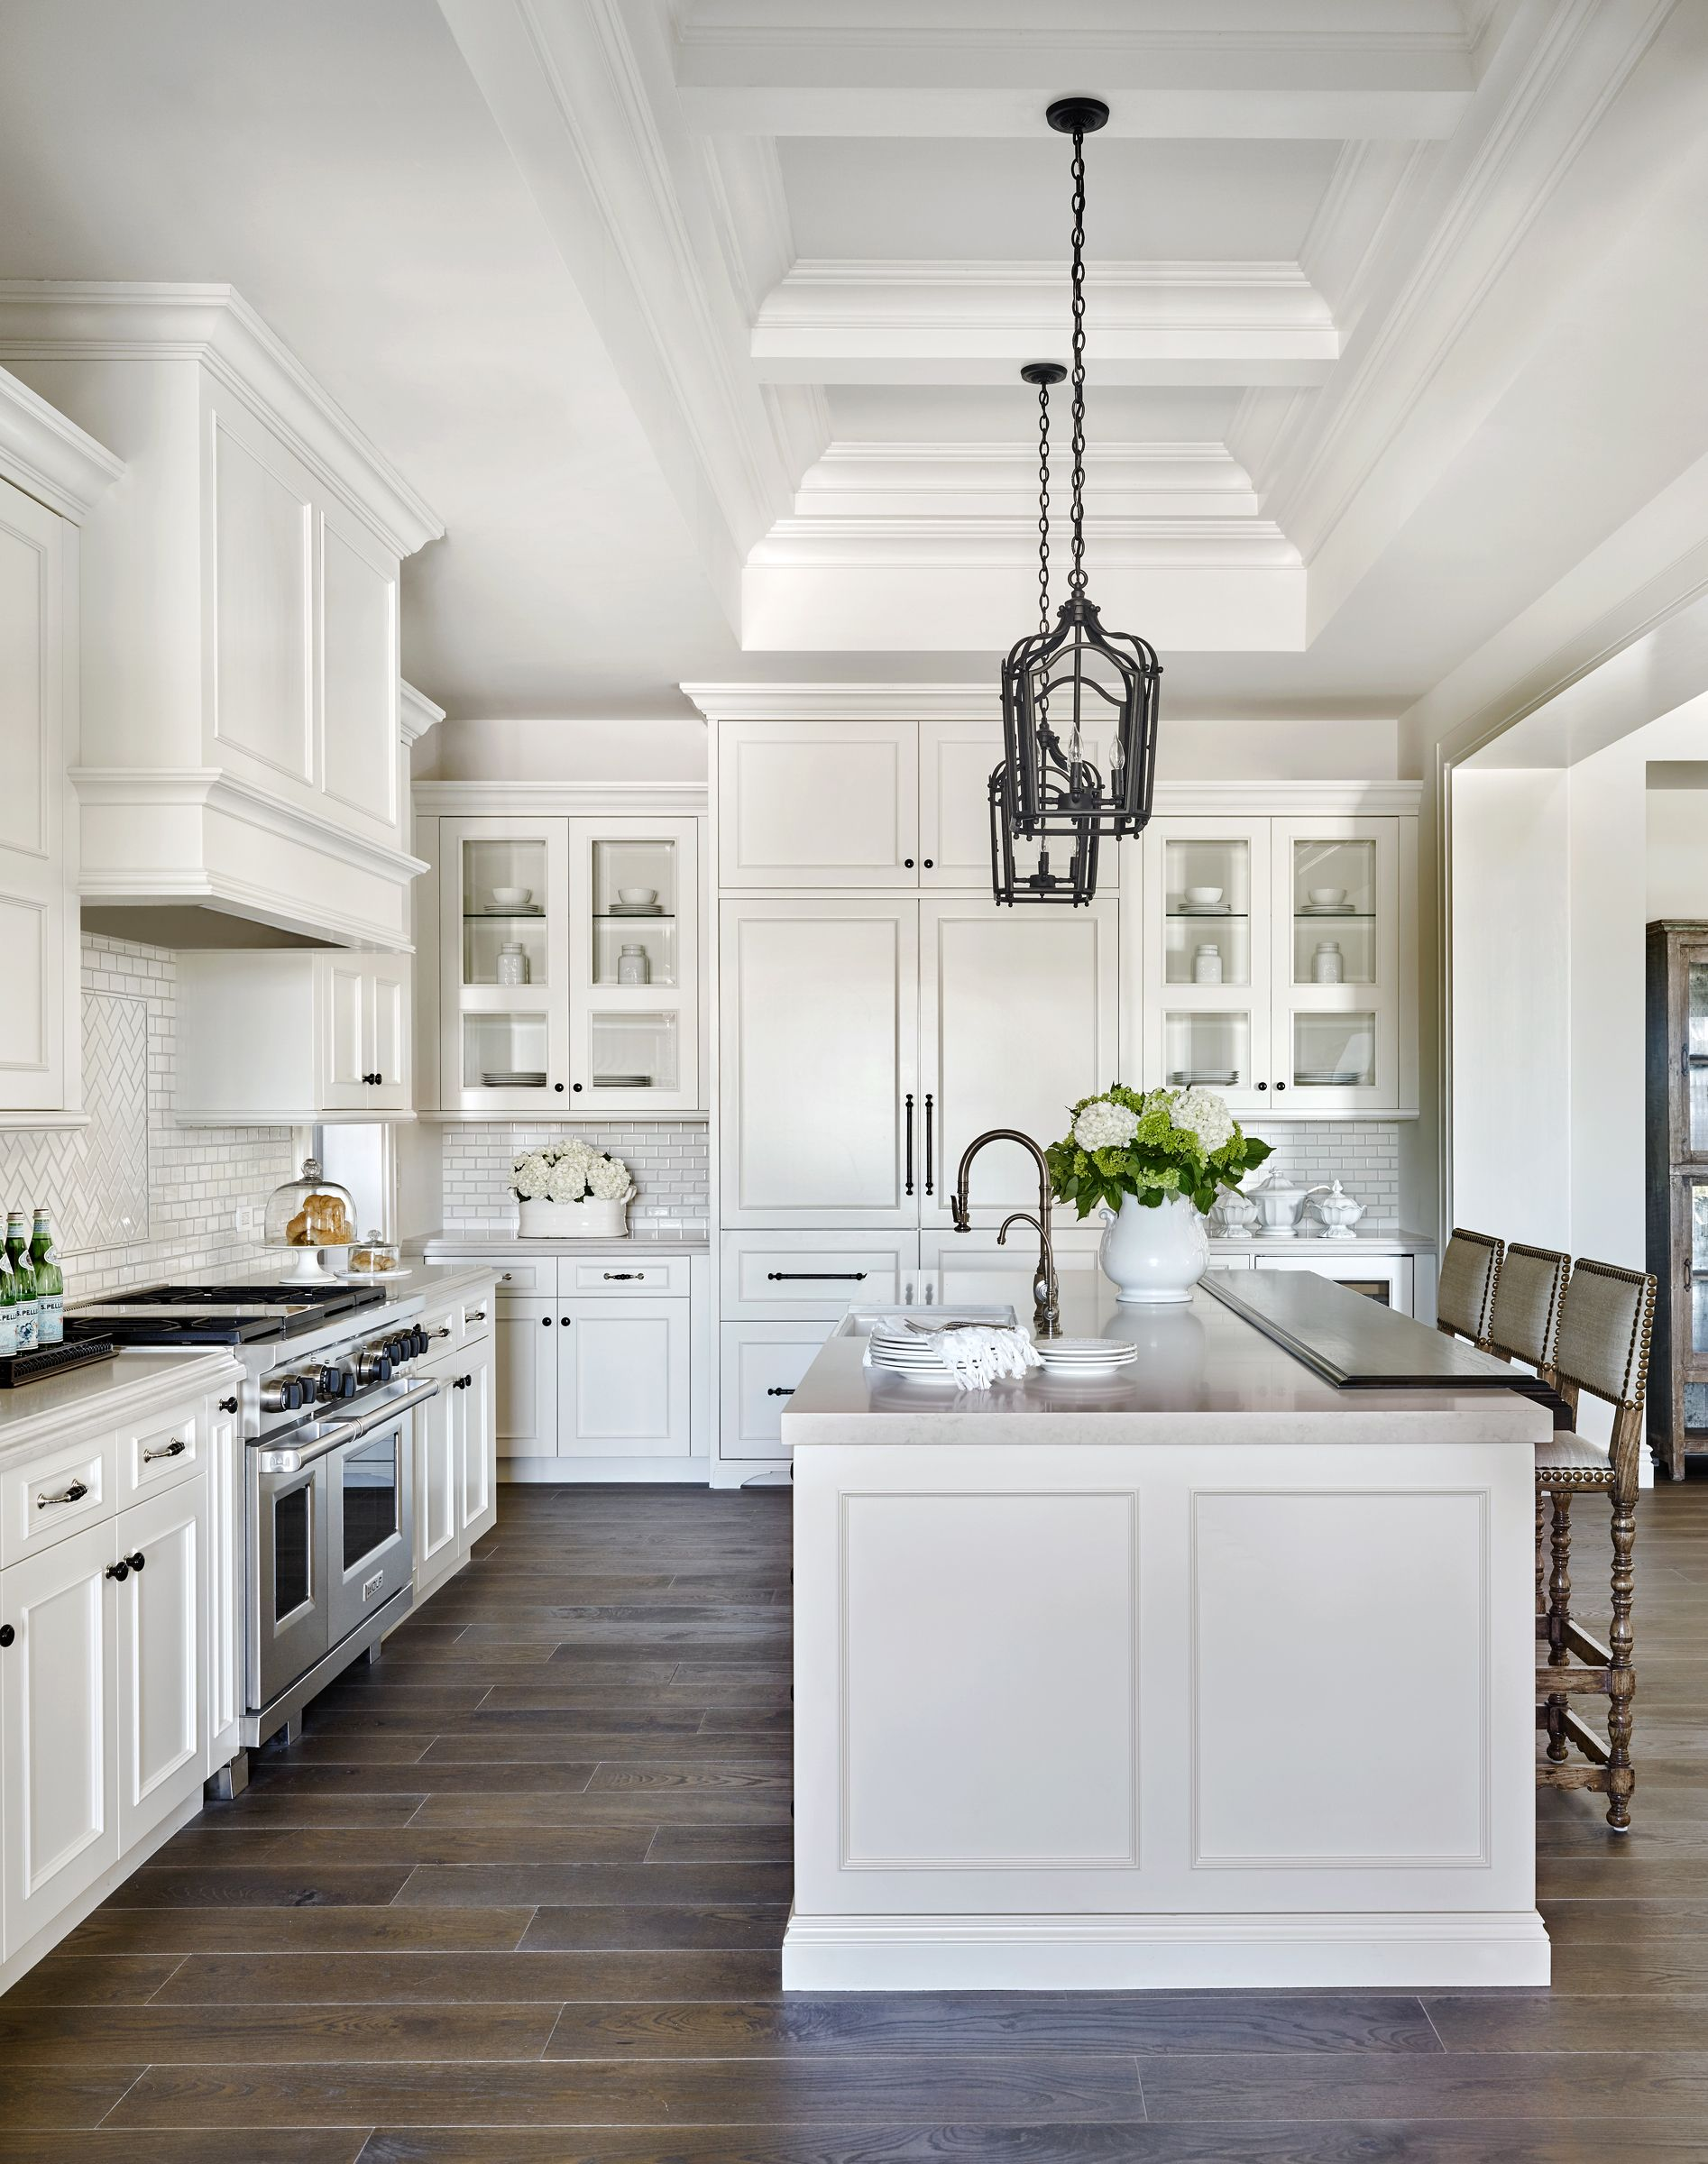 Choosy about chairs katy lifestyles amp homes magazine katy - 17 Best Images About Design Kitchen On Pinterest Countertops French Kitchens And Cabinets